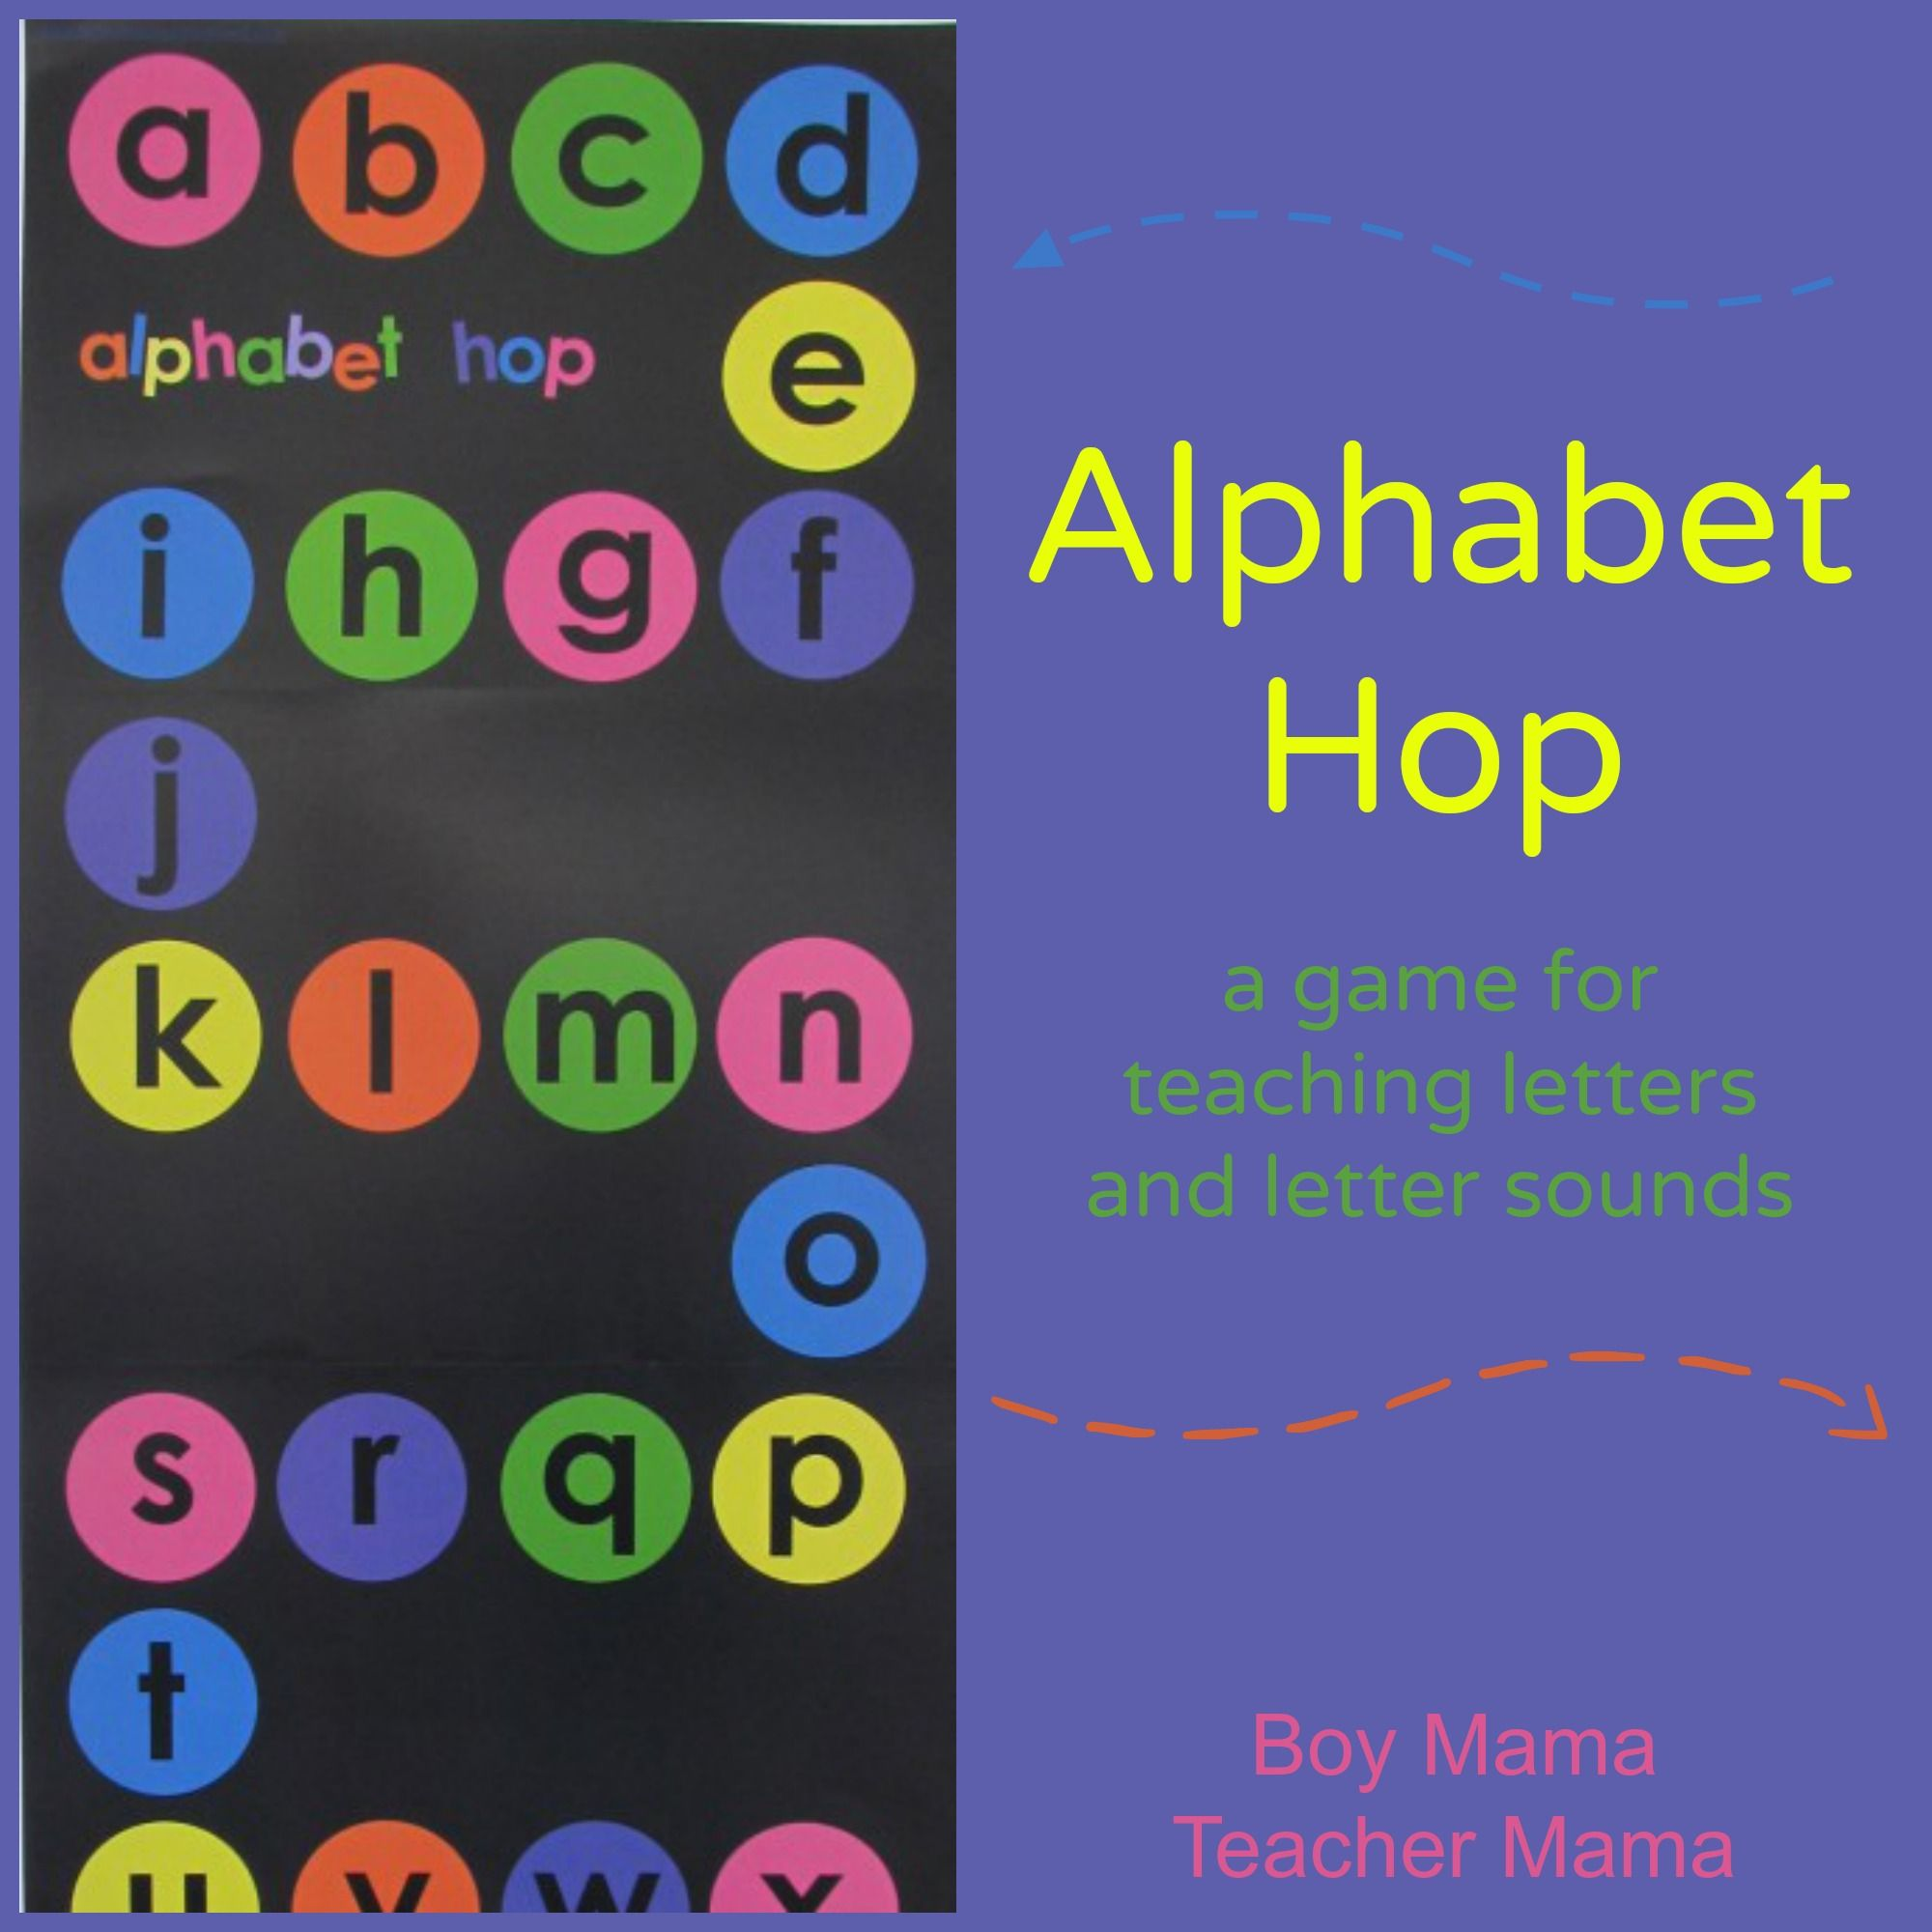 Boy Mama Alphabet Hop A Game for Practicing Letters and